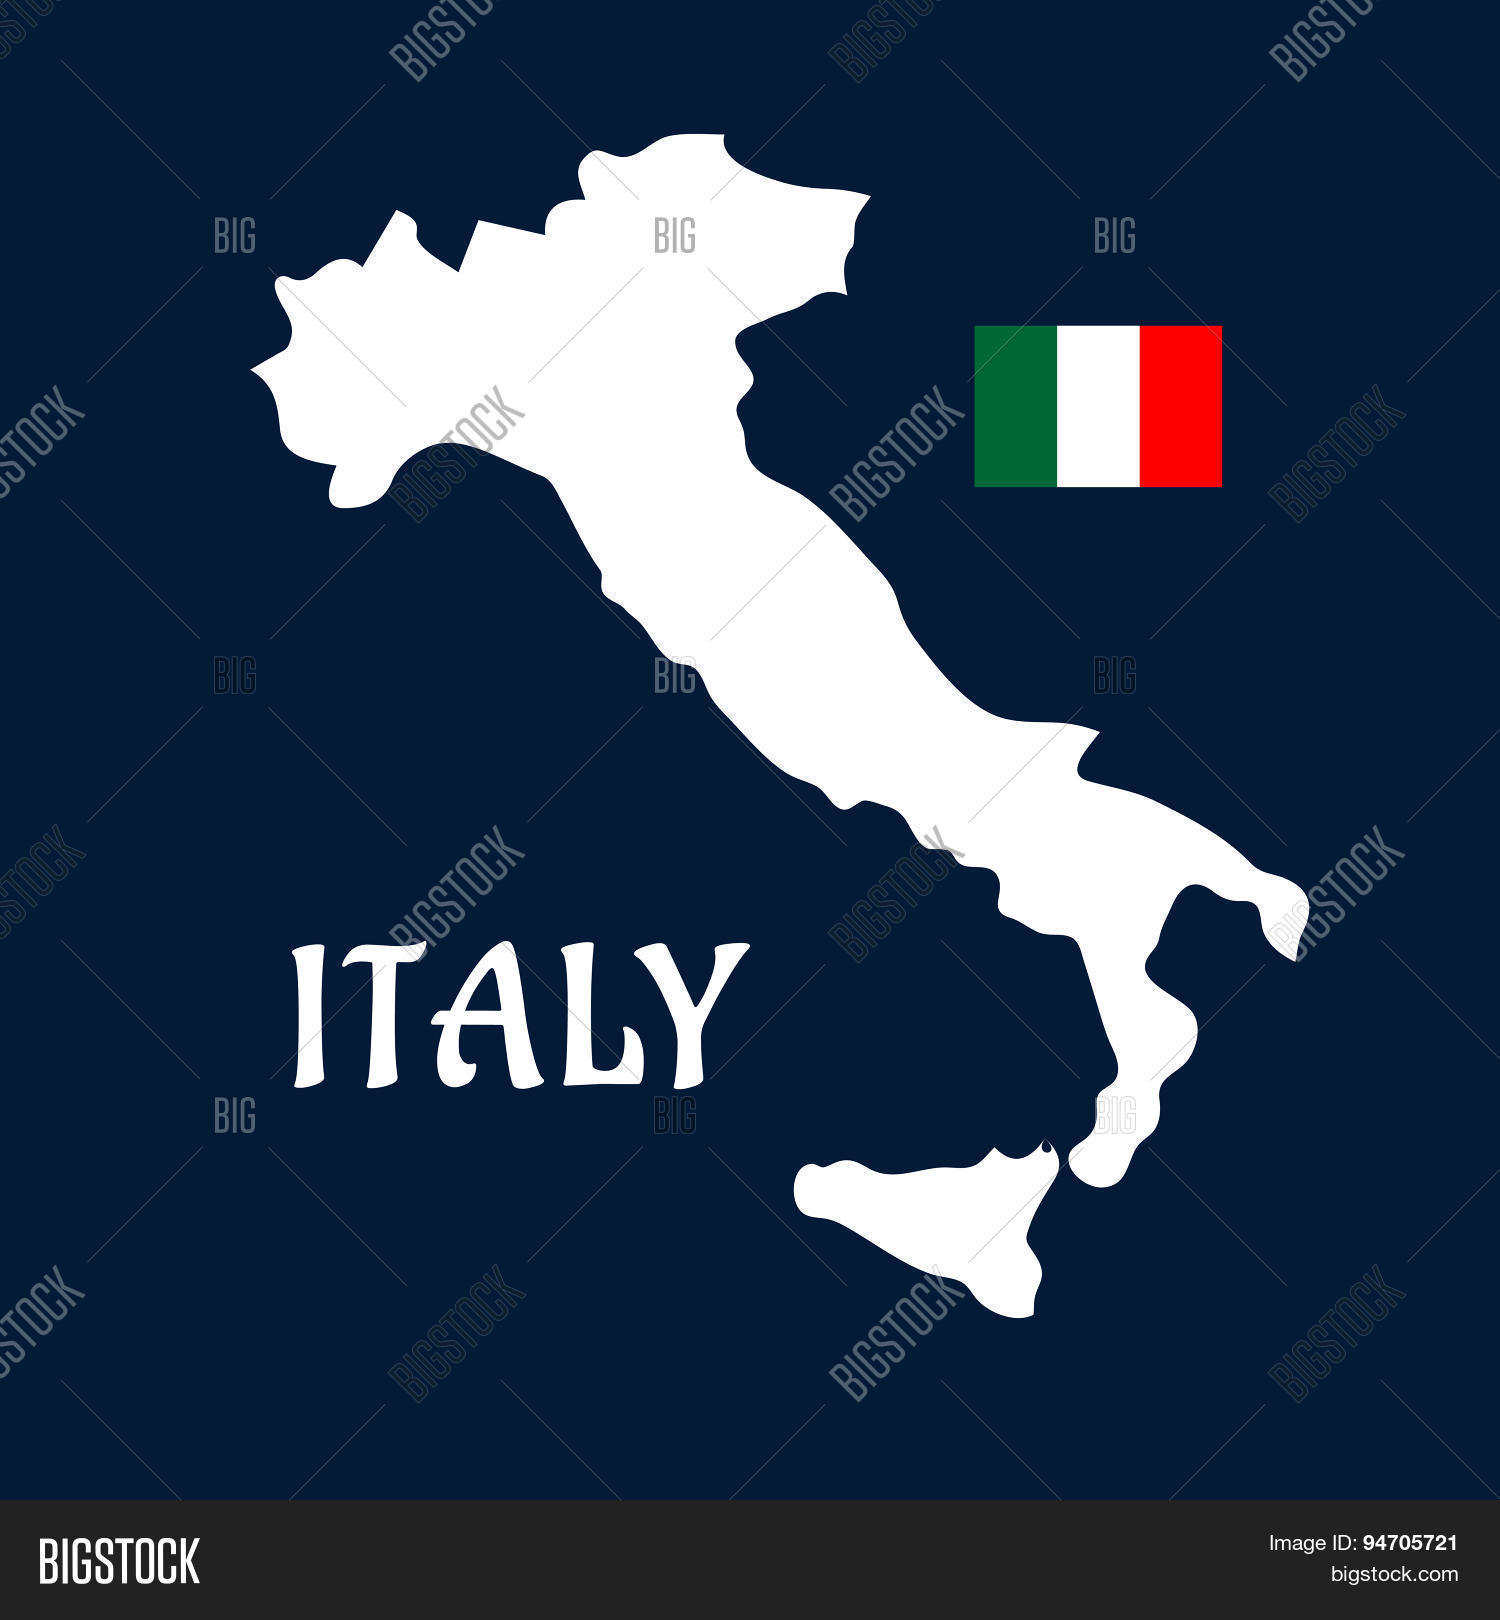 Flat Map Italy Vector   Photo  Free Trial    Bigstock Flat map of Italy and national flag